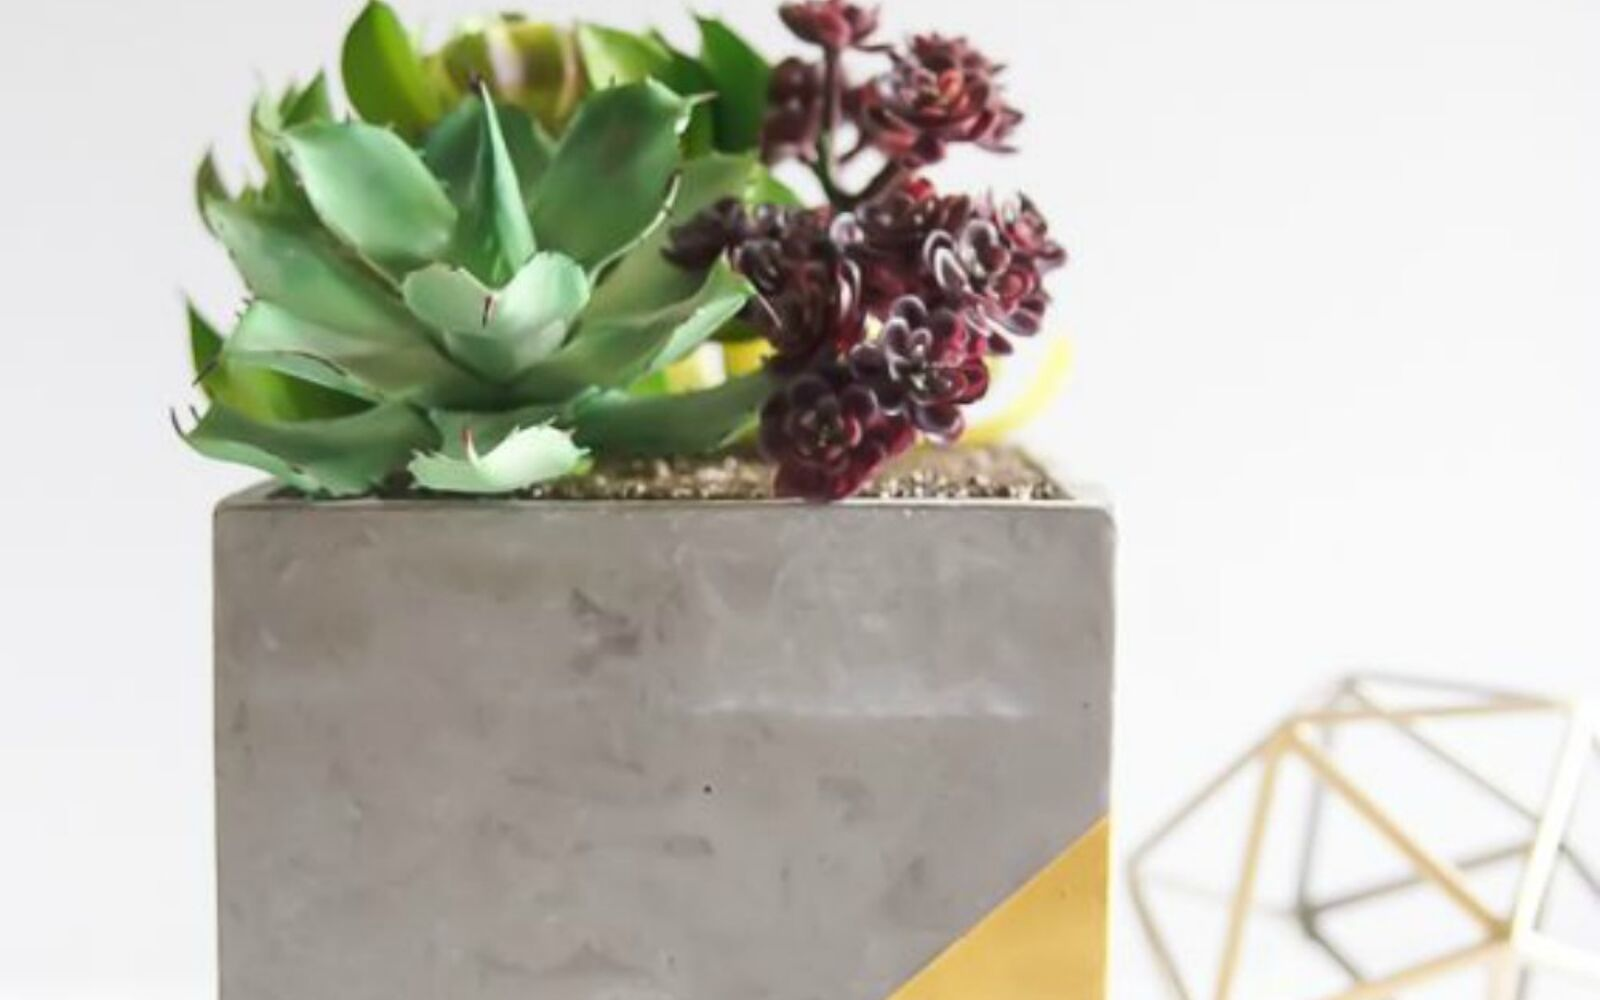 s 14 stunning ways to add cement to your home decor, concrete masonry, home decor, Form it into a succulent planter